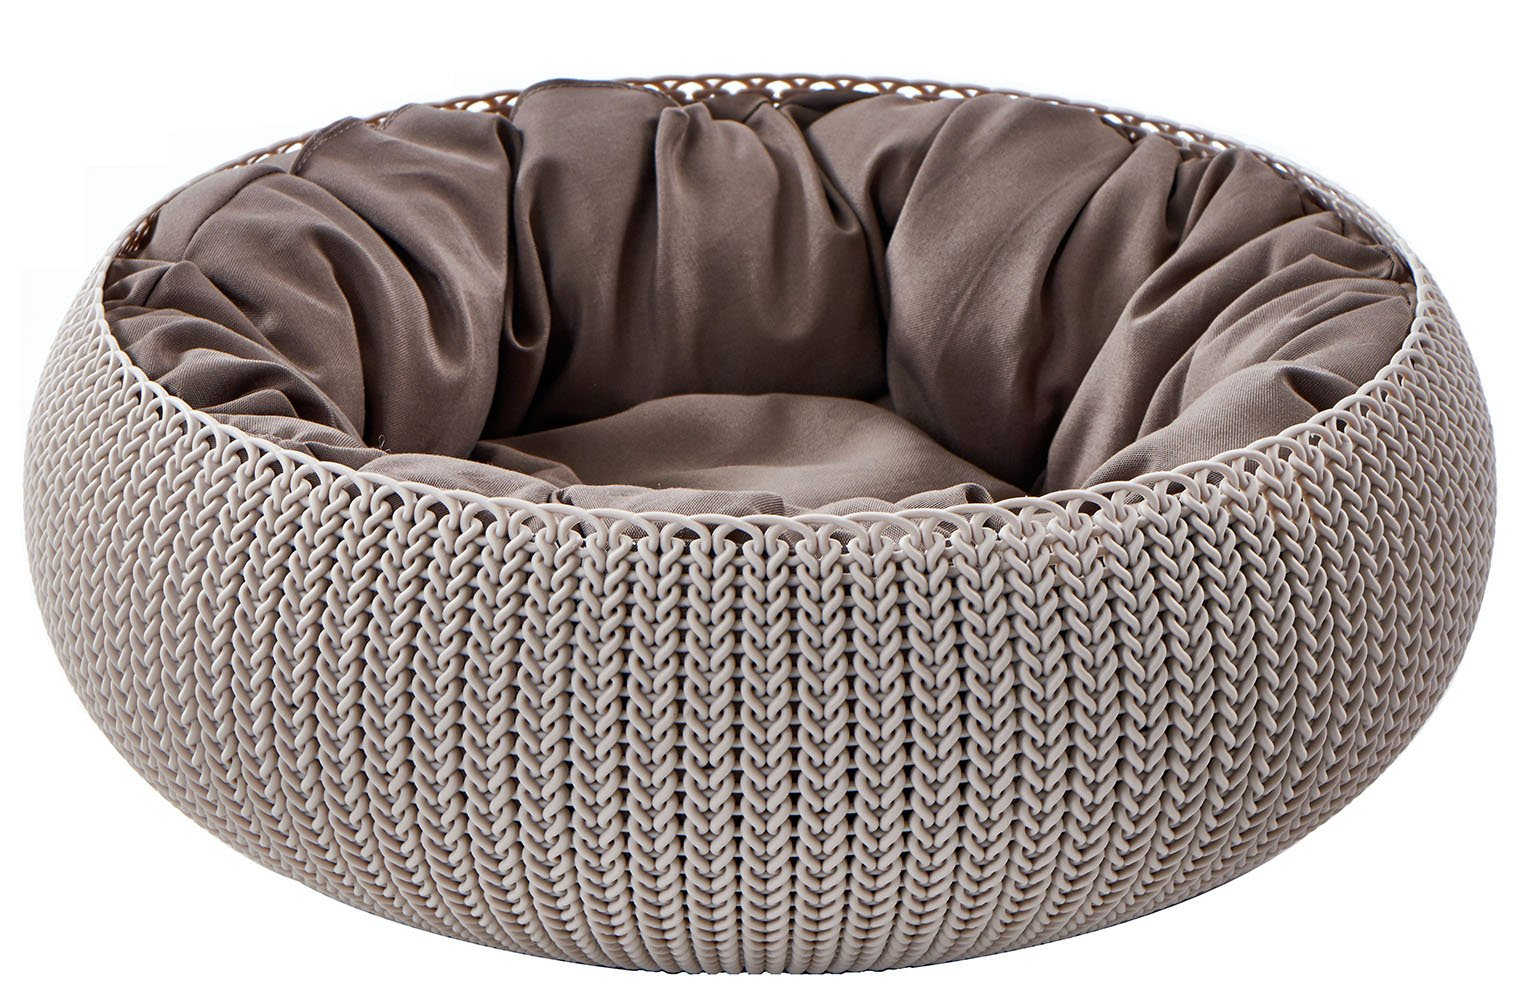 Keter by Curver KNIT Cozy Resin Plastic Pet Bed, Cat Bed & Dog Bed with Cushion, Small Dogs to Medium Cats, Sandy Beige by Keter (Image #1)